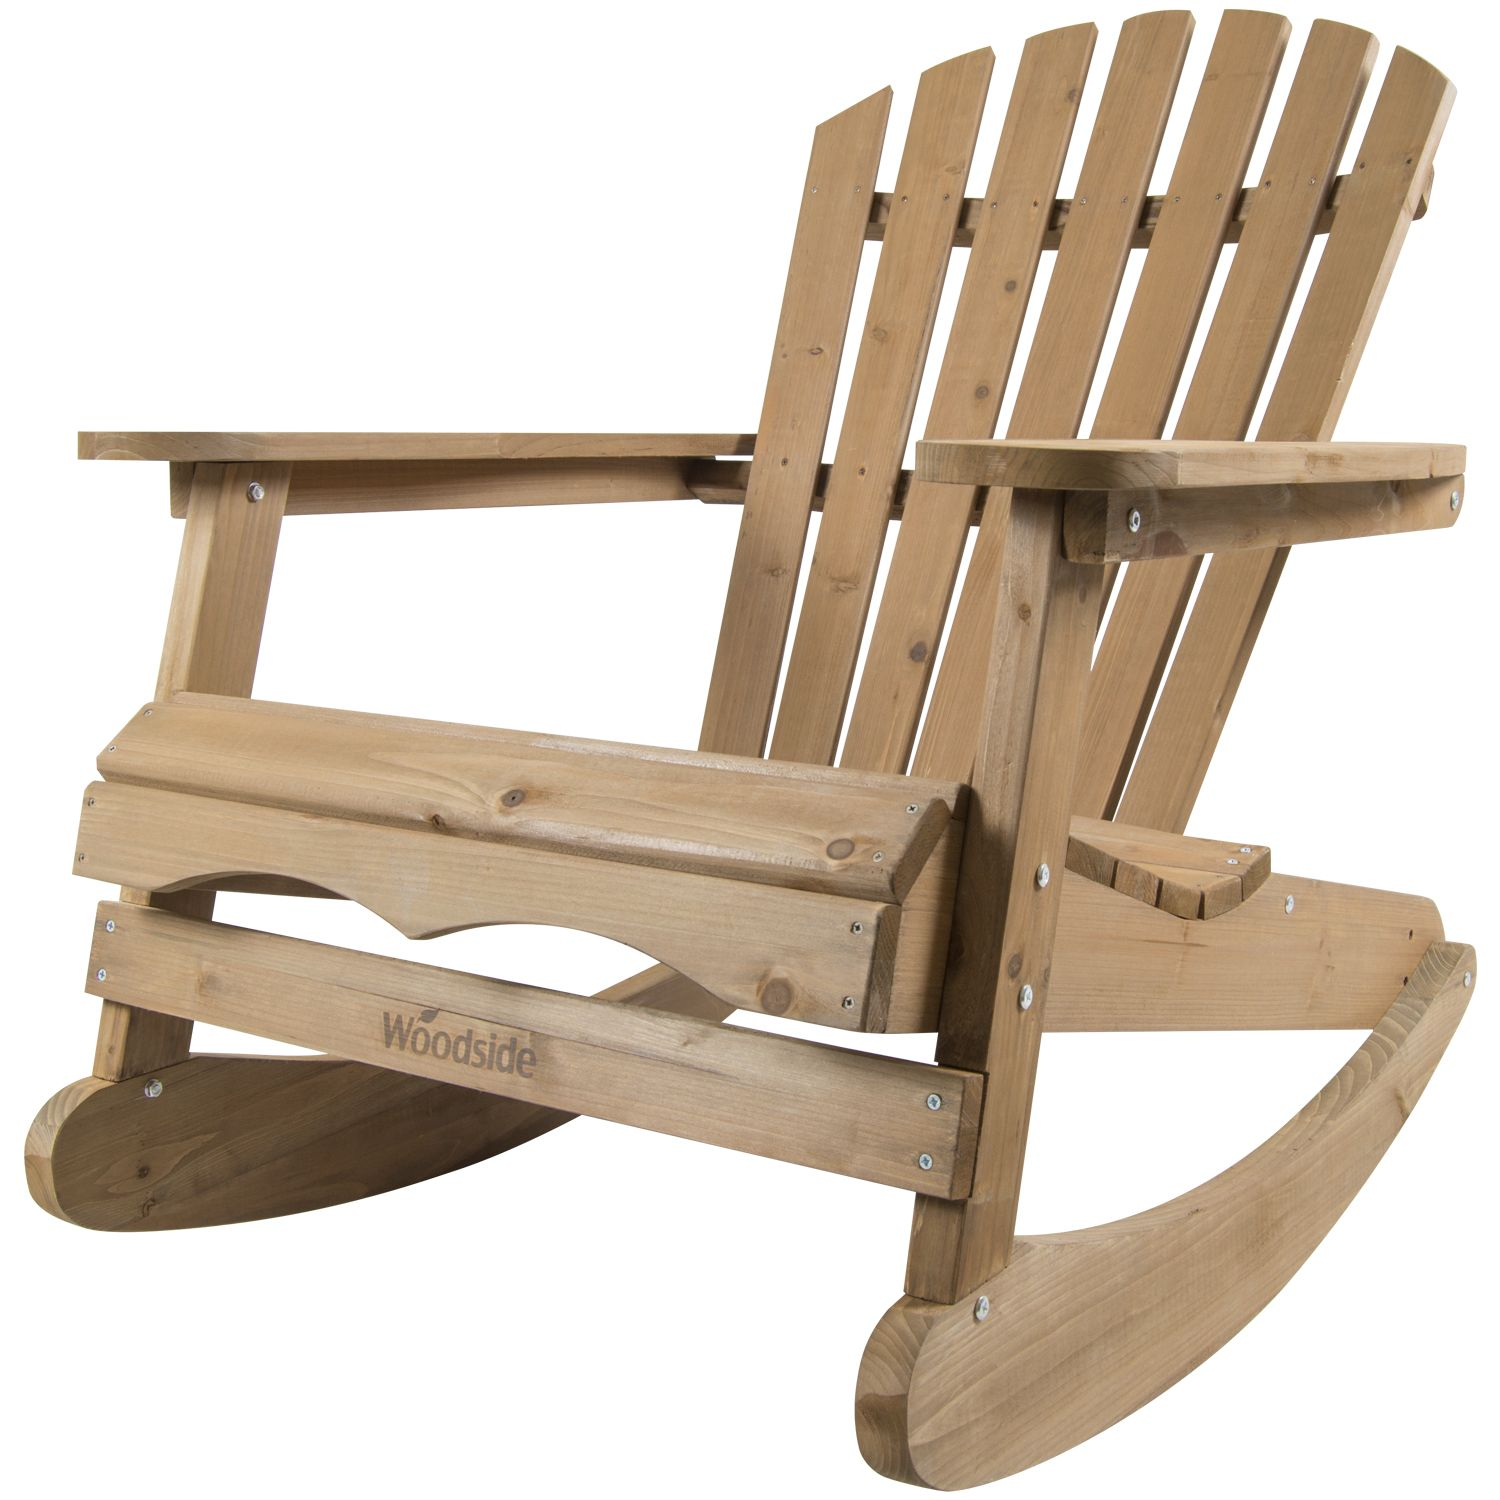 Woodside Rocking Adirondack Chair. Outdoor Value is a